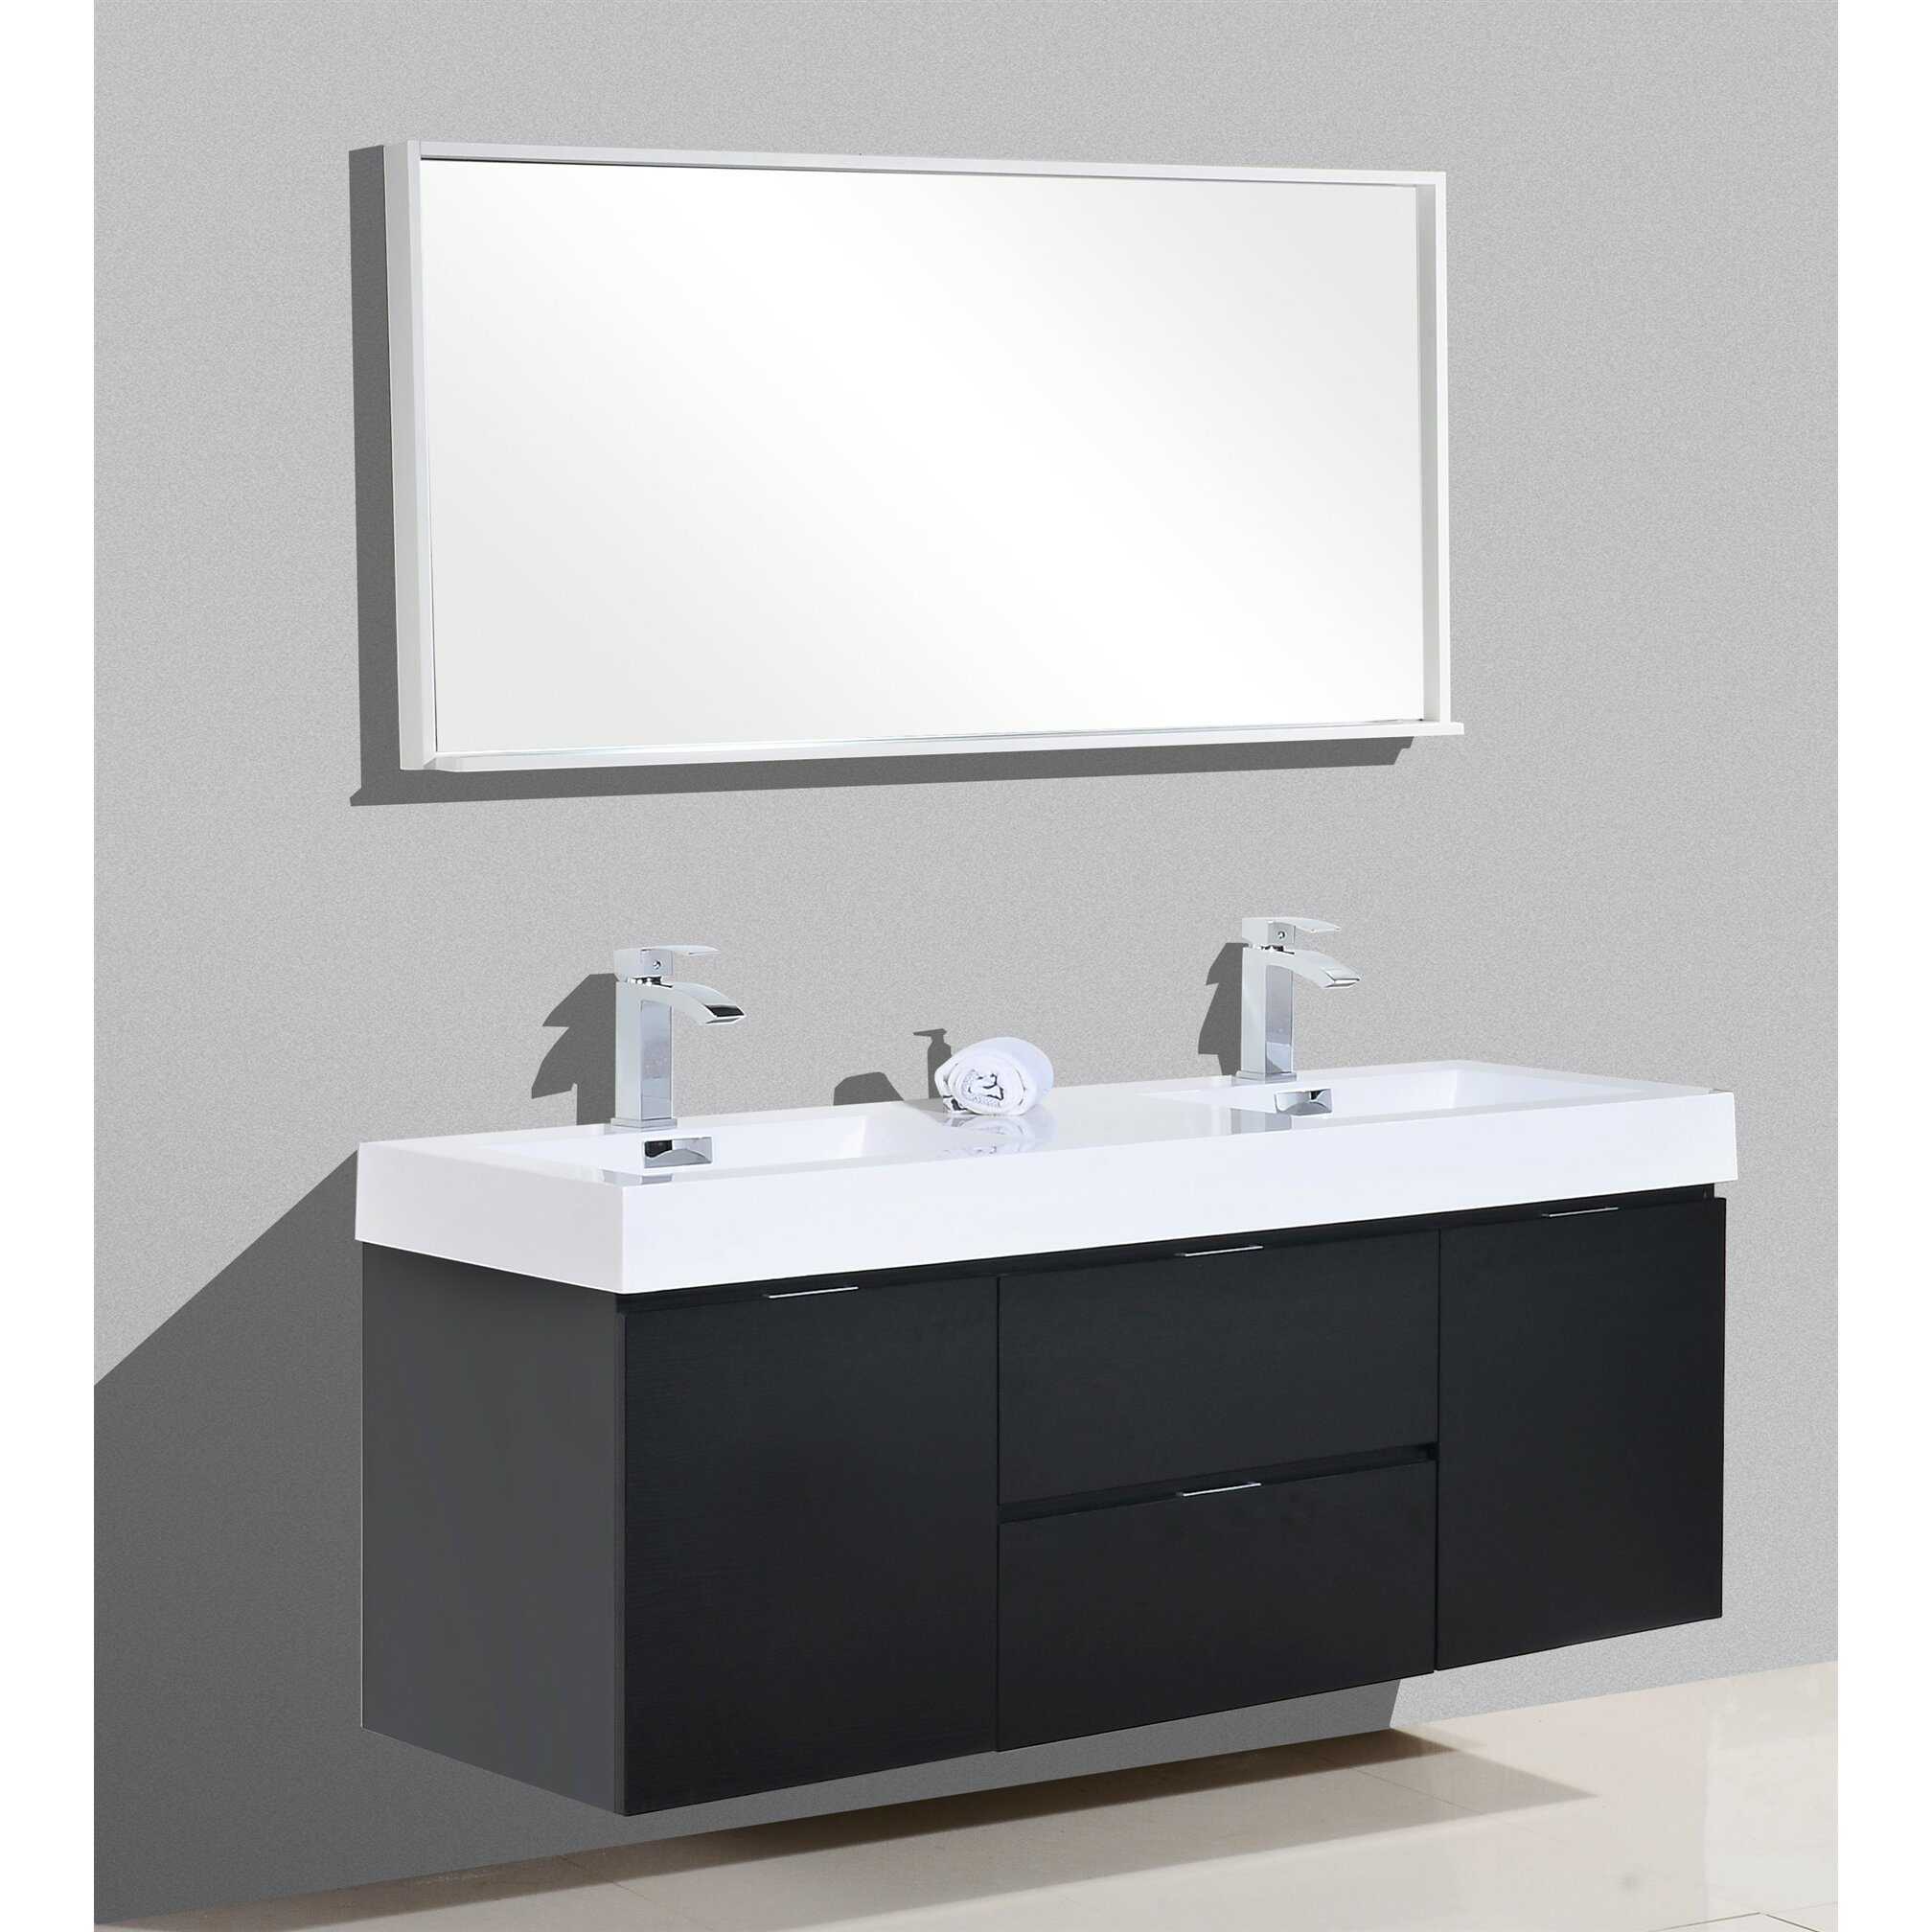 Kube bath bliss 60 double wall mount modern bathroom for Bath and vanity set